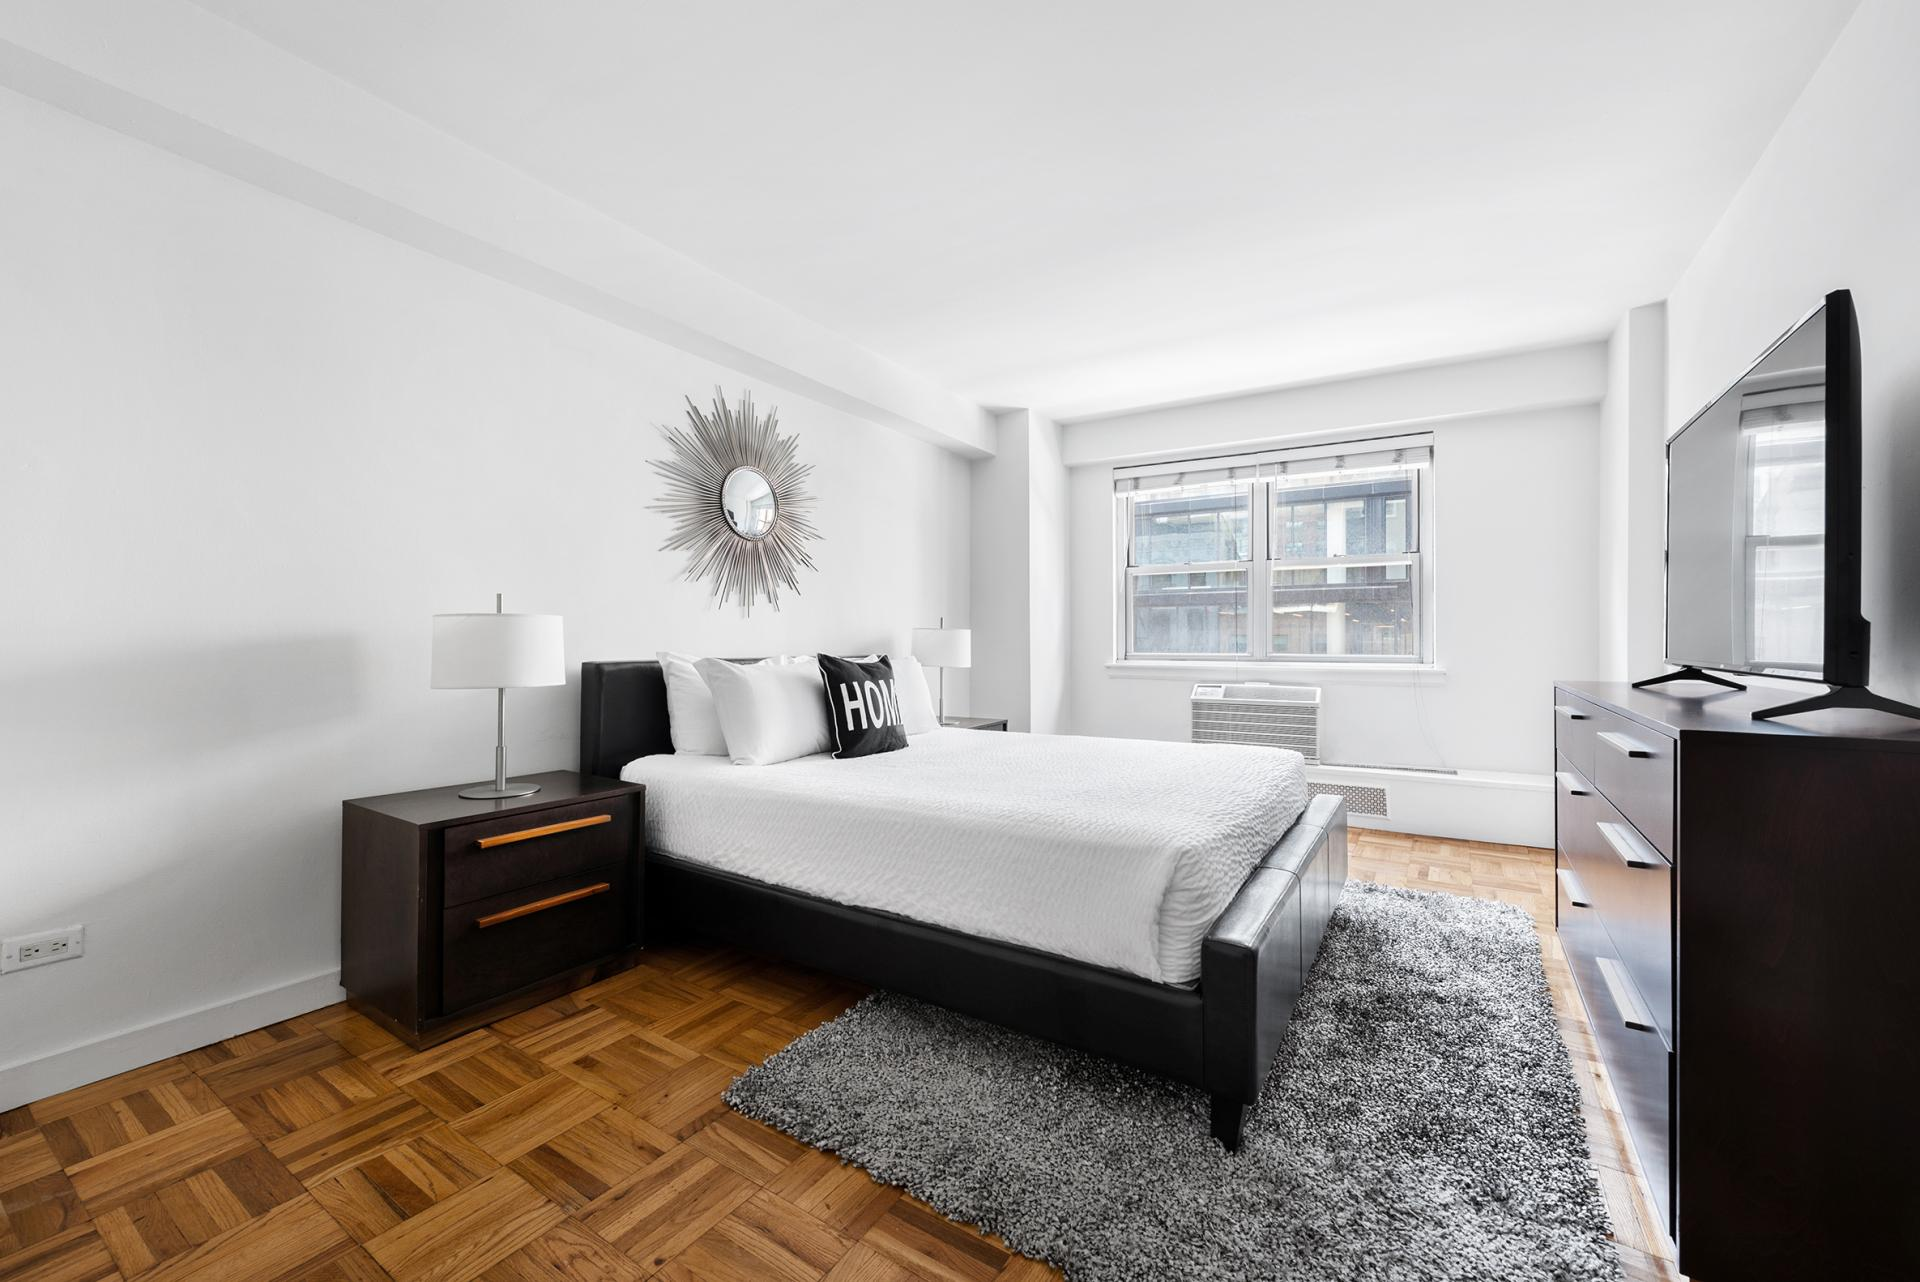 Bedroom at 60 East 12th Street Apartments, Greenwich Village, Manhattan